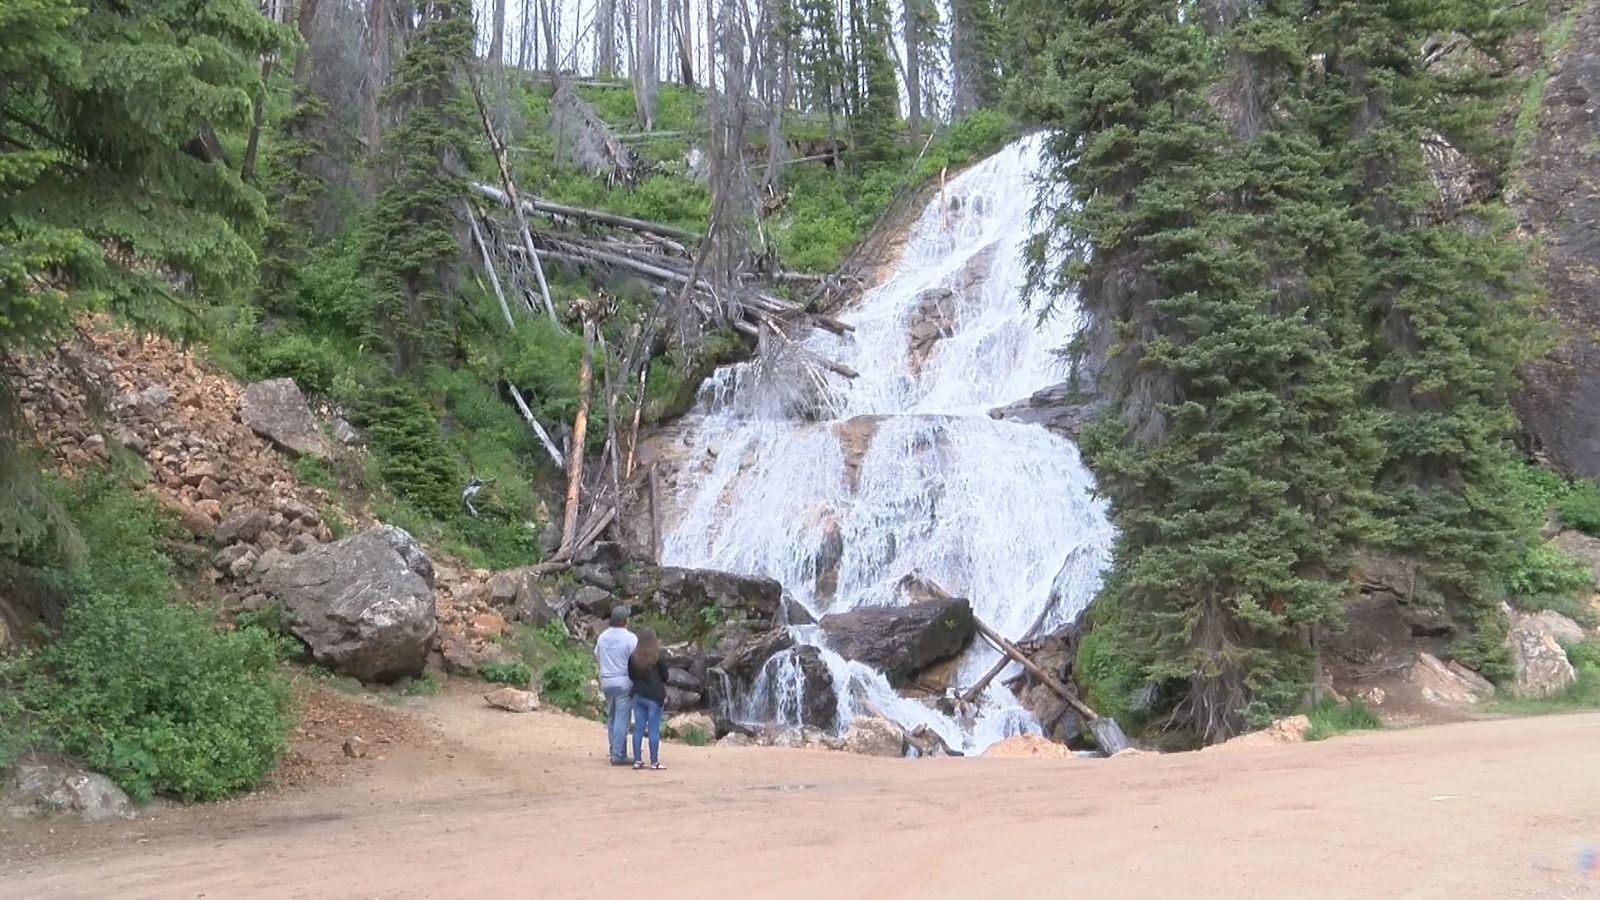 If you travel over the{ } Skalkaho Pass connecting Hamilton to the Flint Creek Valley near Philipsburg, you'll discover one of Montana's most magnificent natural wonders. In our Montana Moment, we take you to Skalkaho Falls, where white water plunges down from the Sapphire Mountains, inspiring awe at the power of nature.